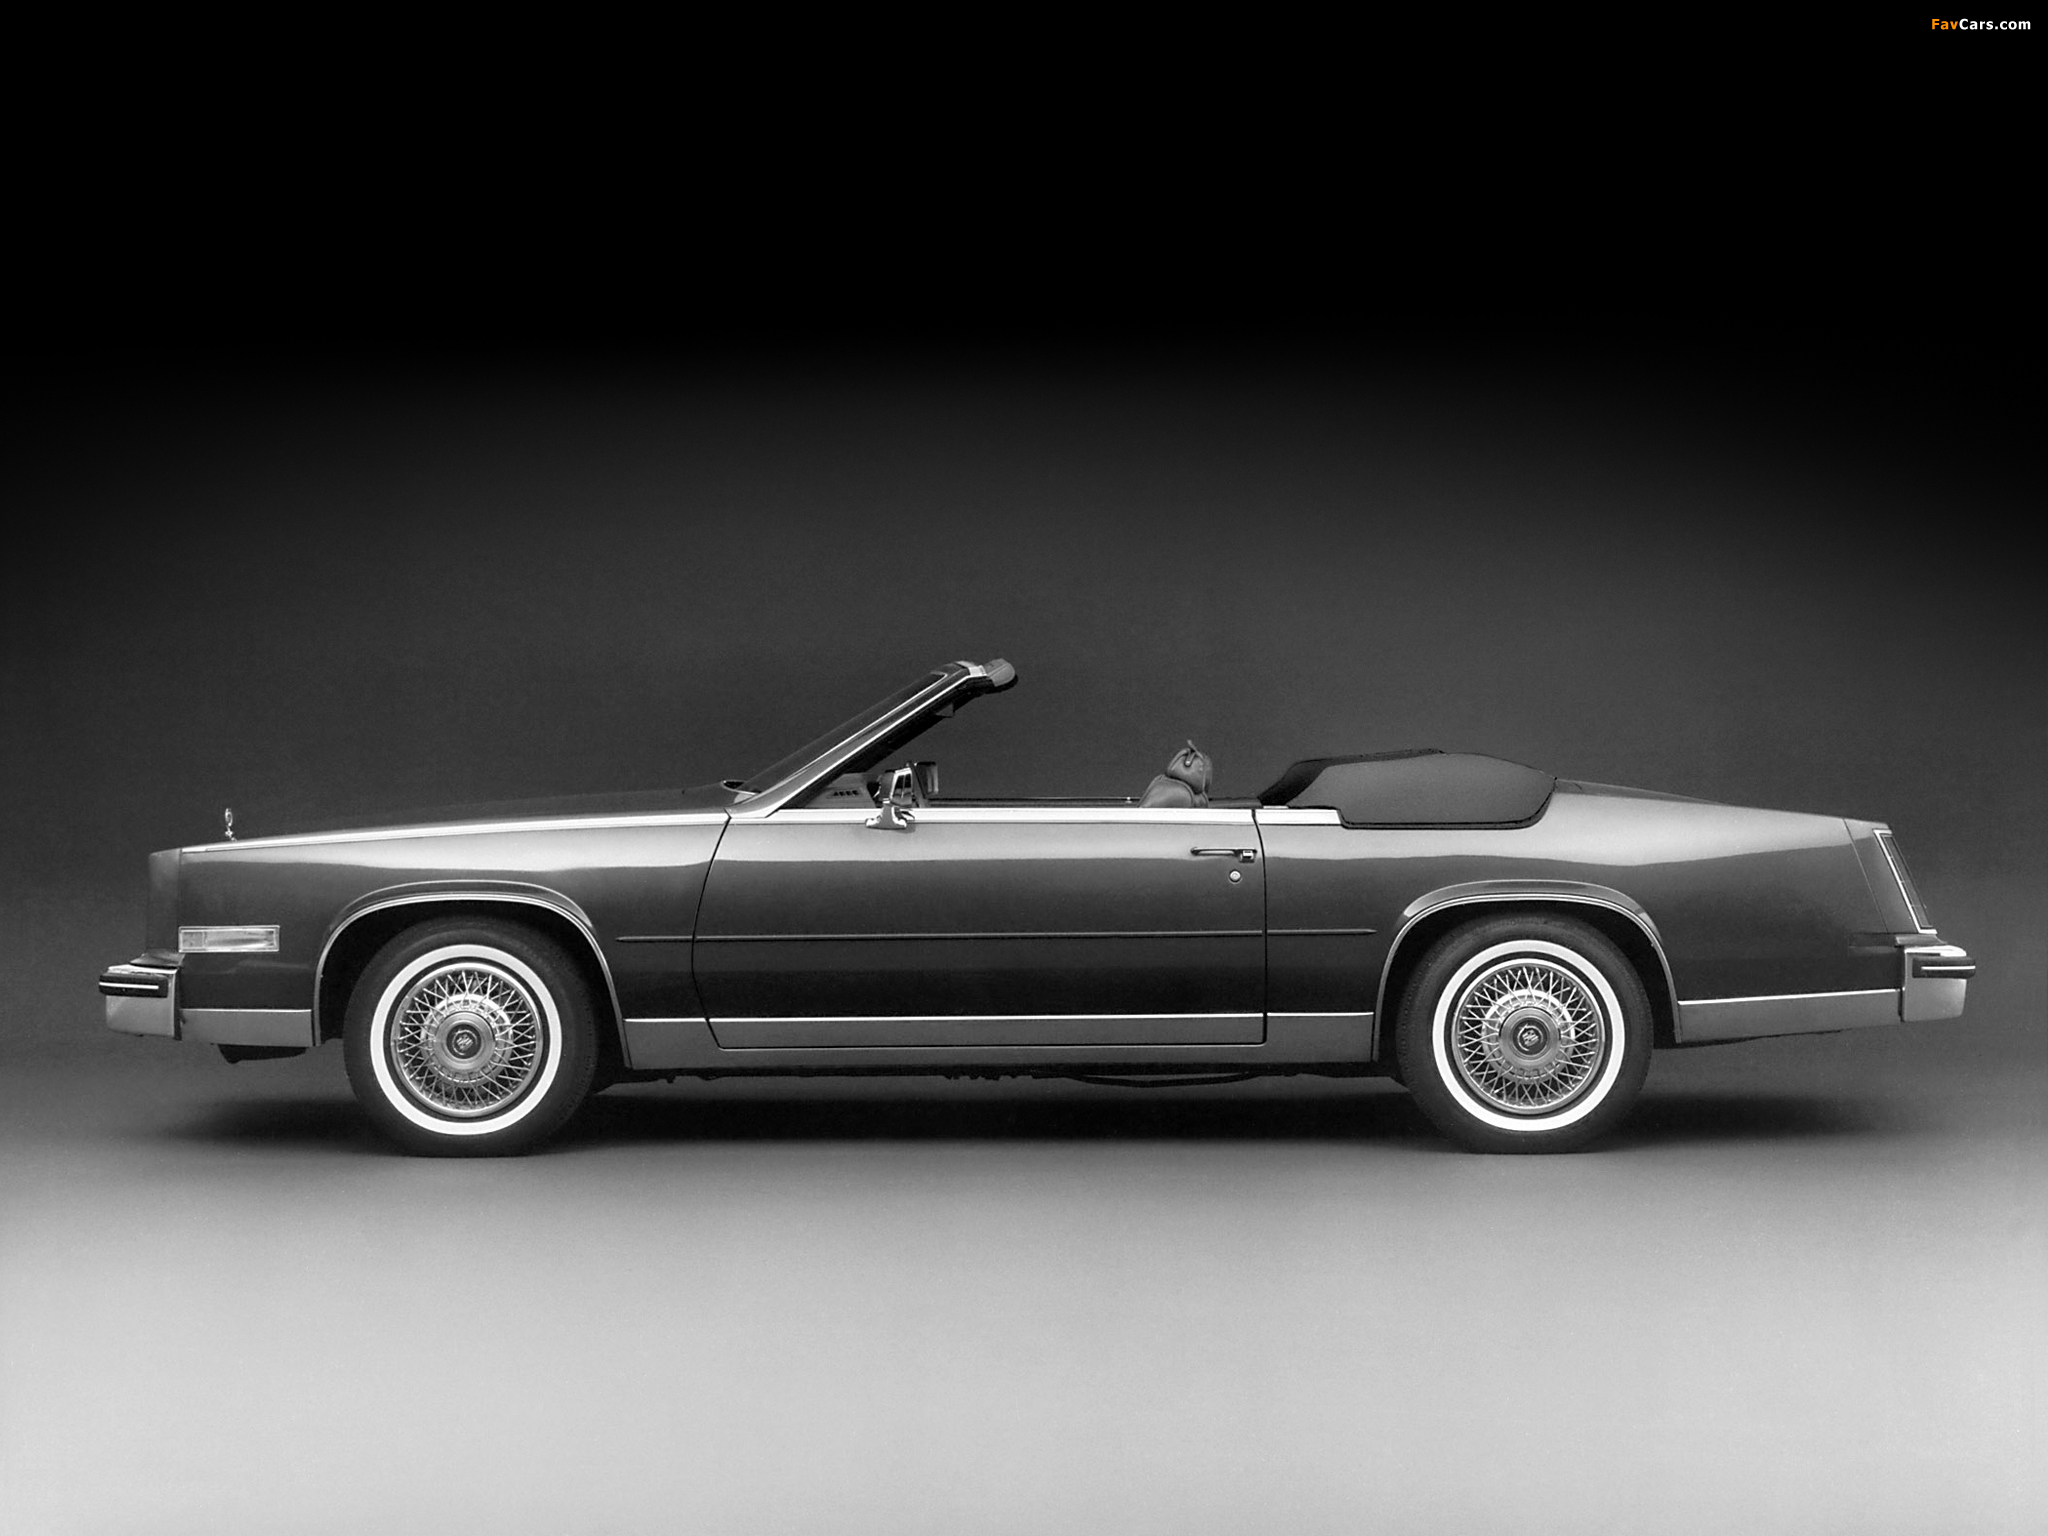 images of 1984 85 cadillac eldorado biarritz convertible 1983 85 2048x1536 images of 1984 85 cadillac eldorado